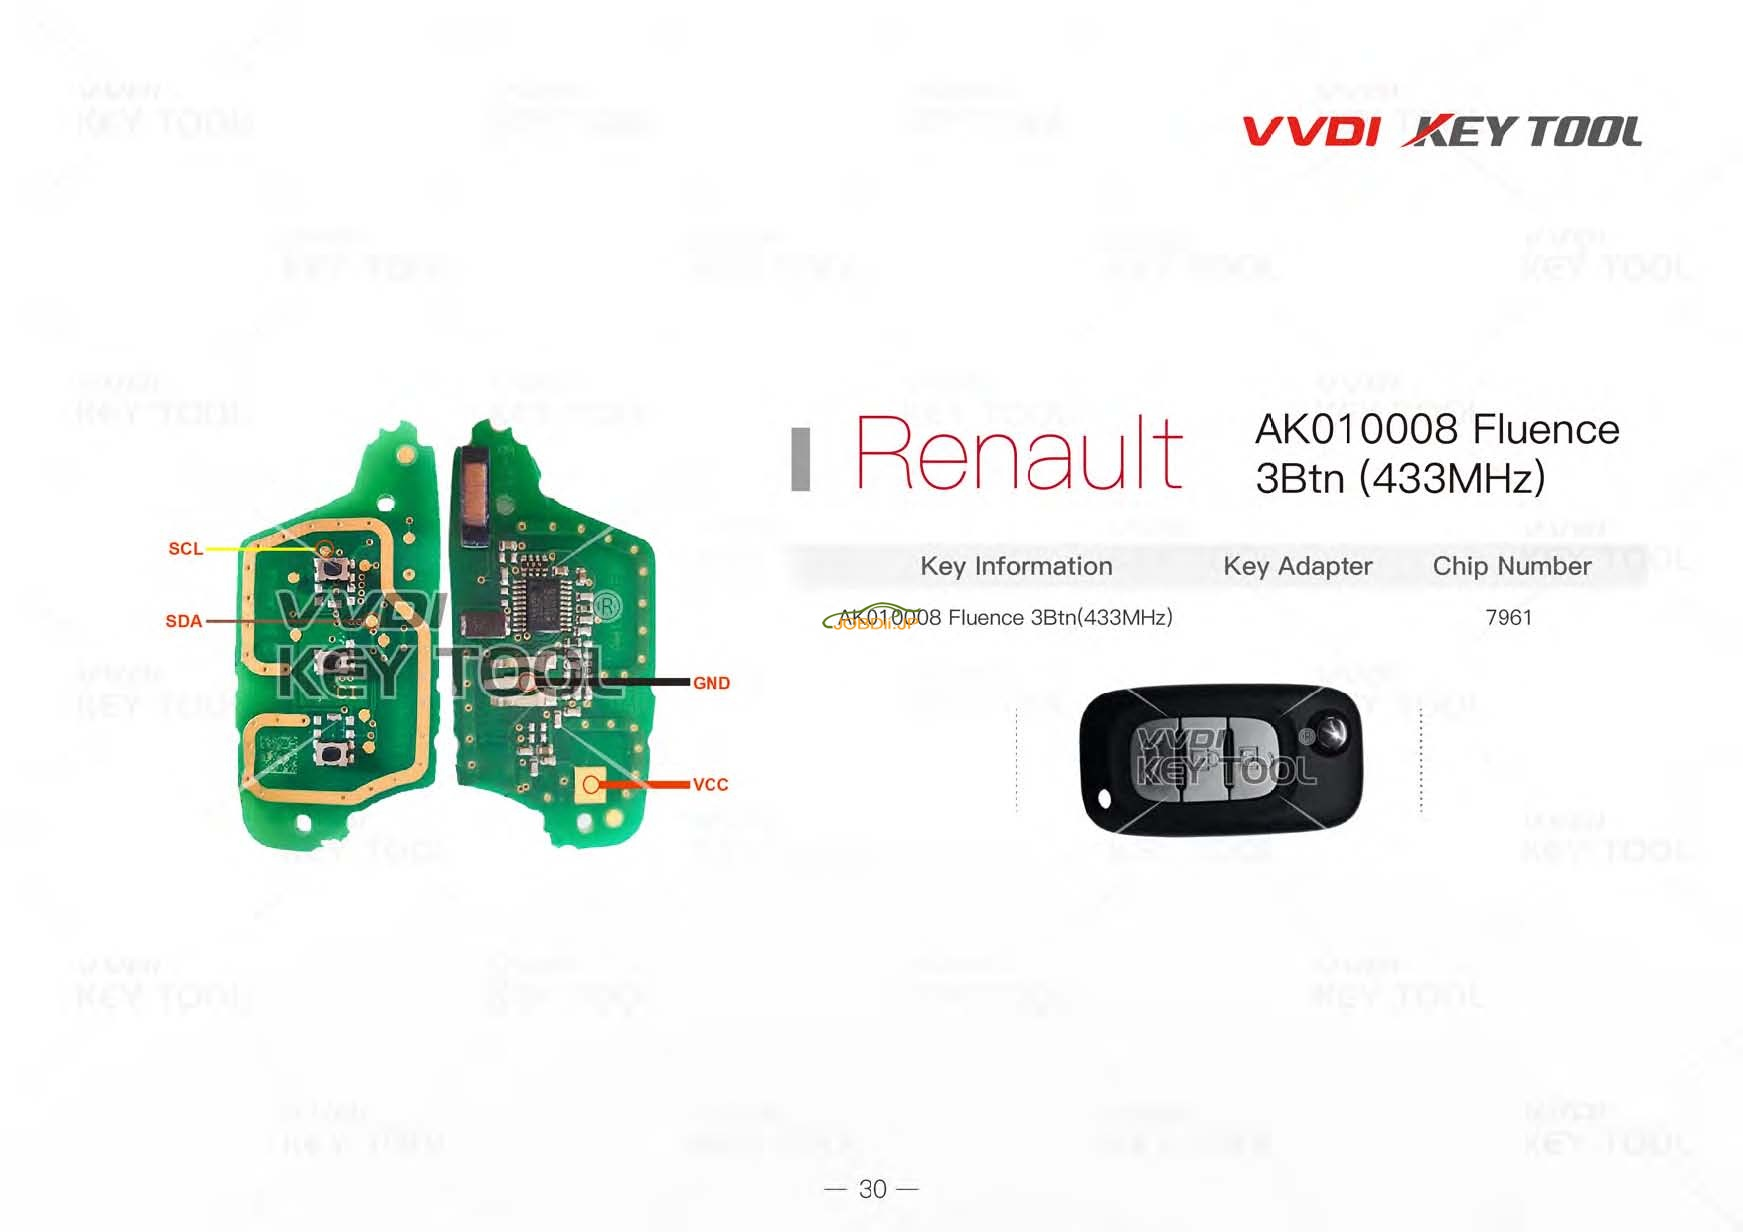 vvdi-key-tool-renew-diagram-30